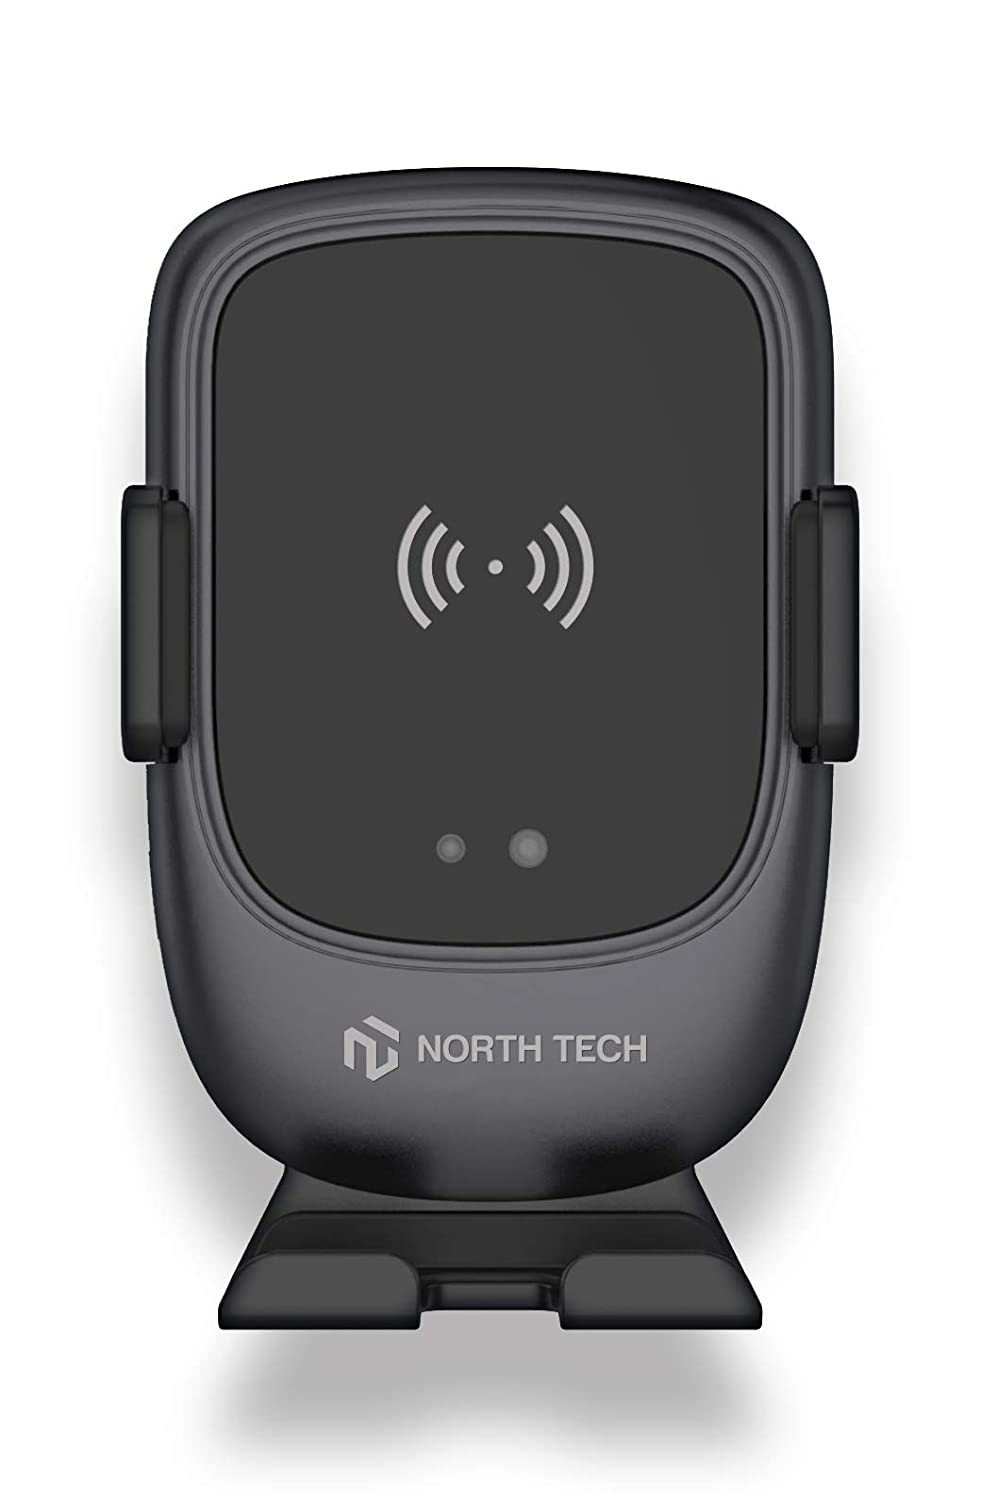 NT North Tech Wireless Car Charger Mount with USB-C 10W 7.5W Auto-Clamp Fast Wireless Charger Air Vent Phone Holder Compatible iPhone 11,11 Pro,11 Pro Max,XS Max,XS,XR,X Galaxy S10 S9 S8,Note 10 Note